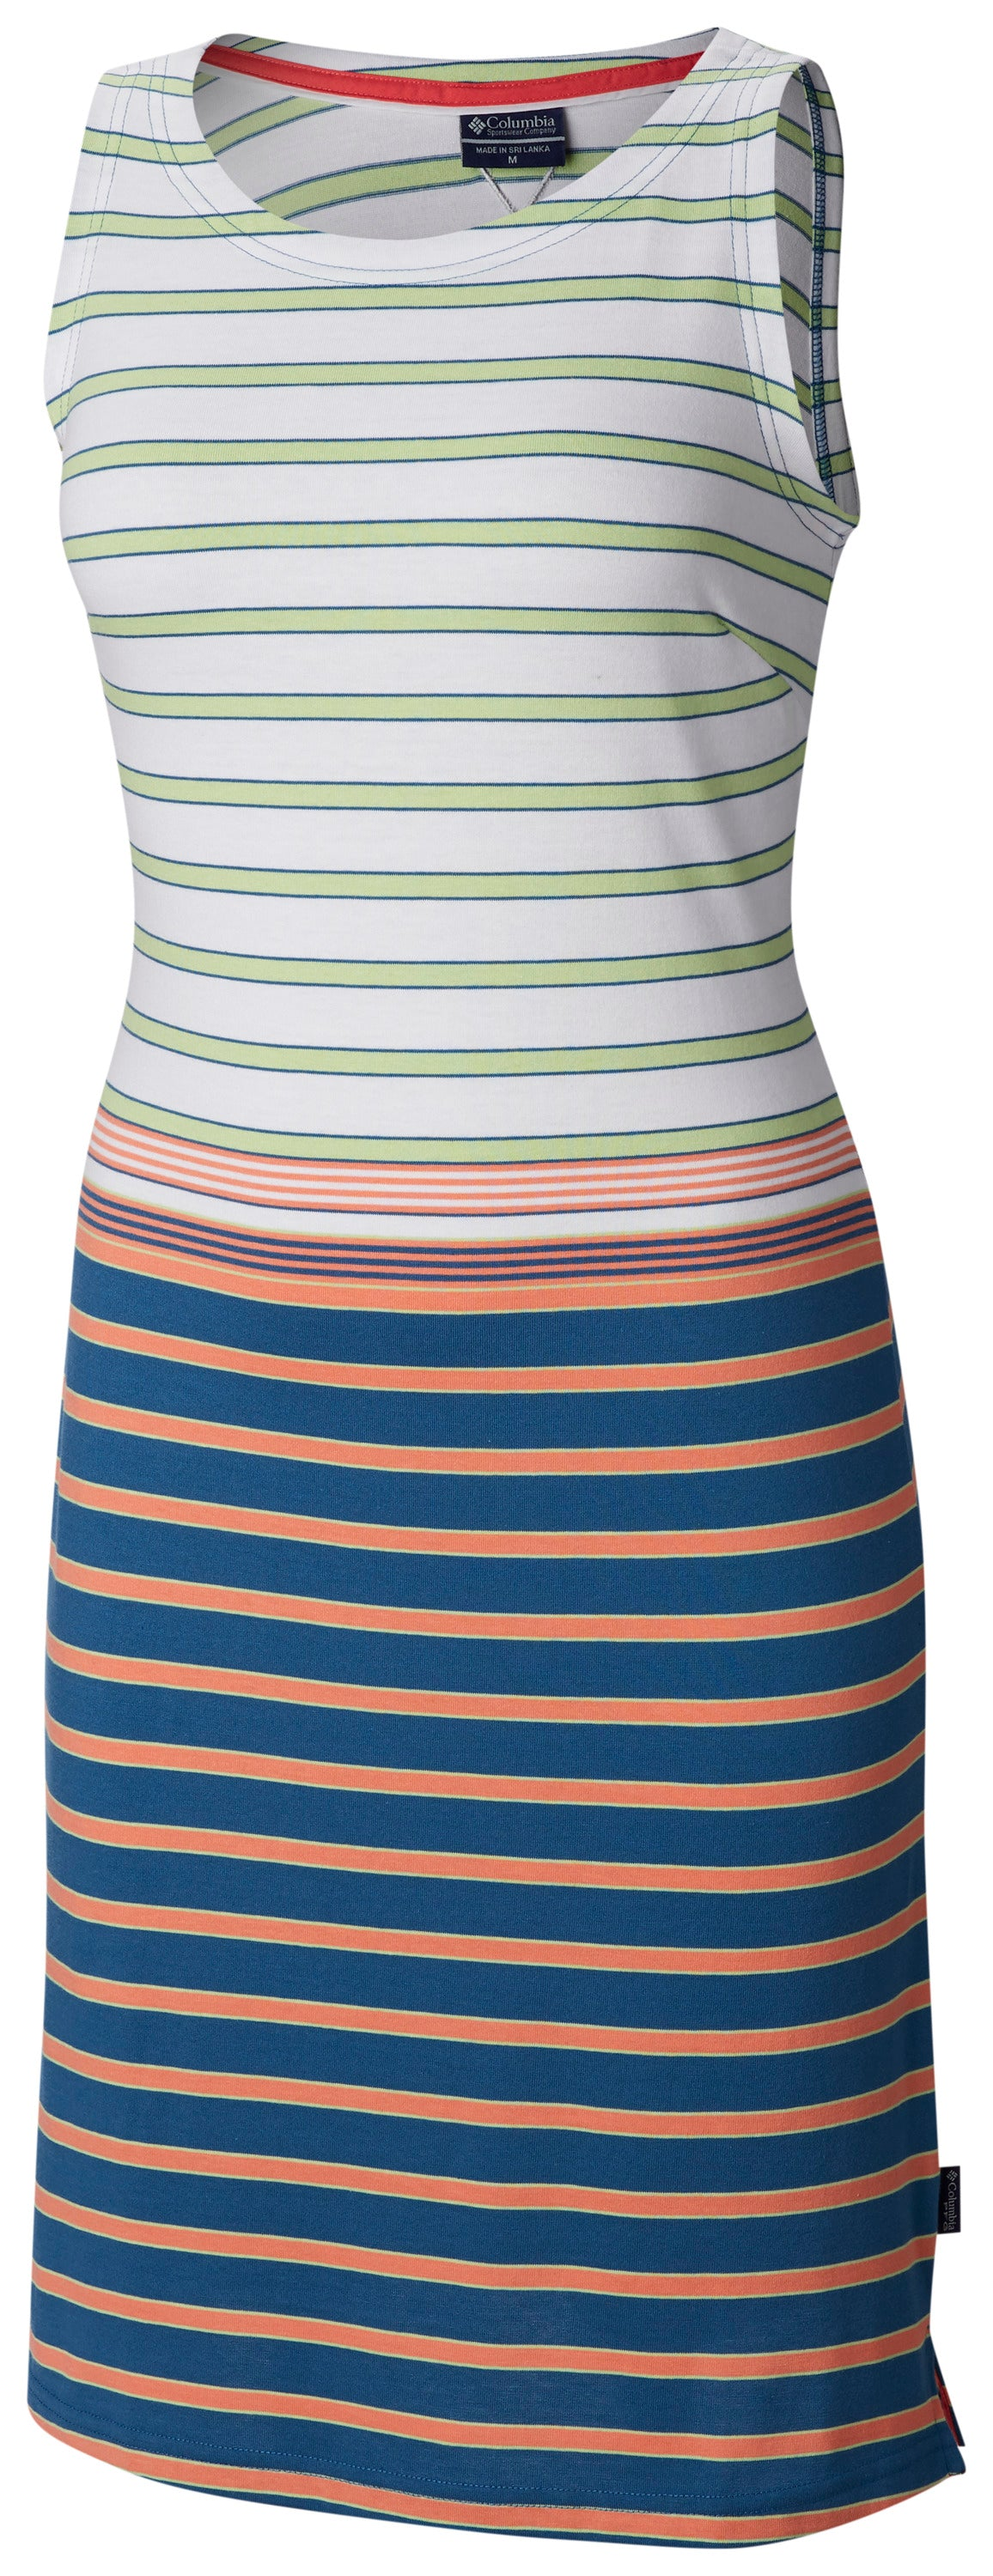 Columbia Harborside Knit Dress